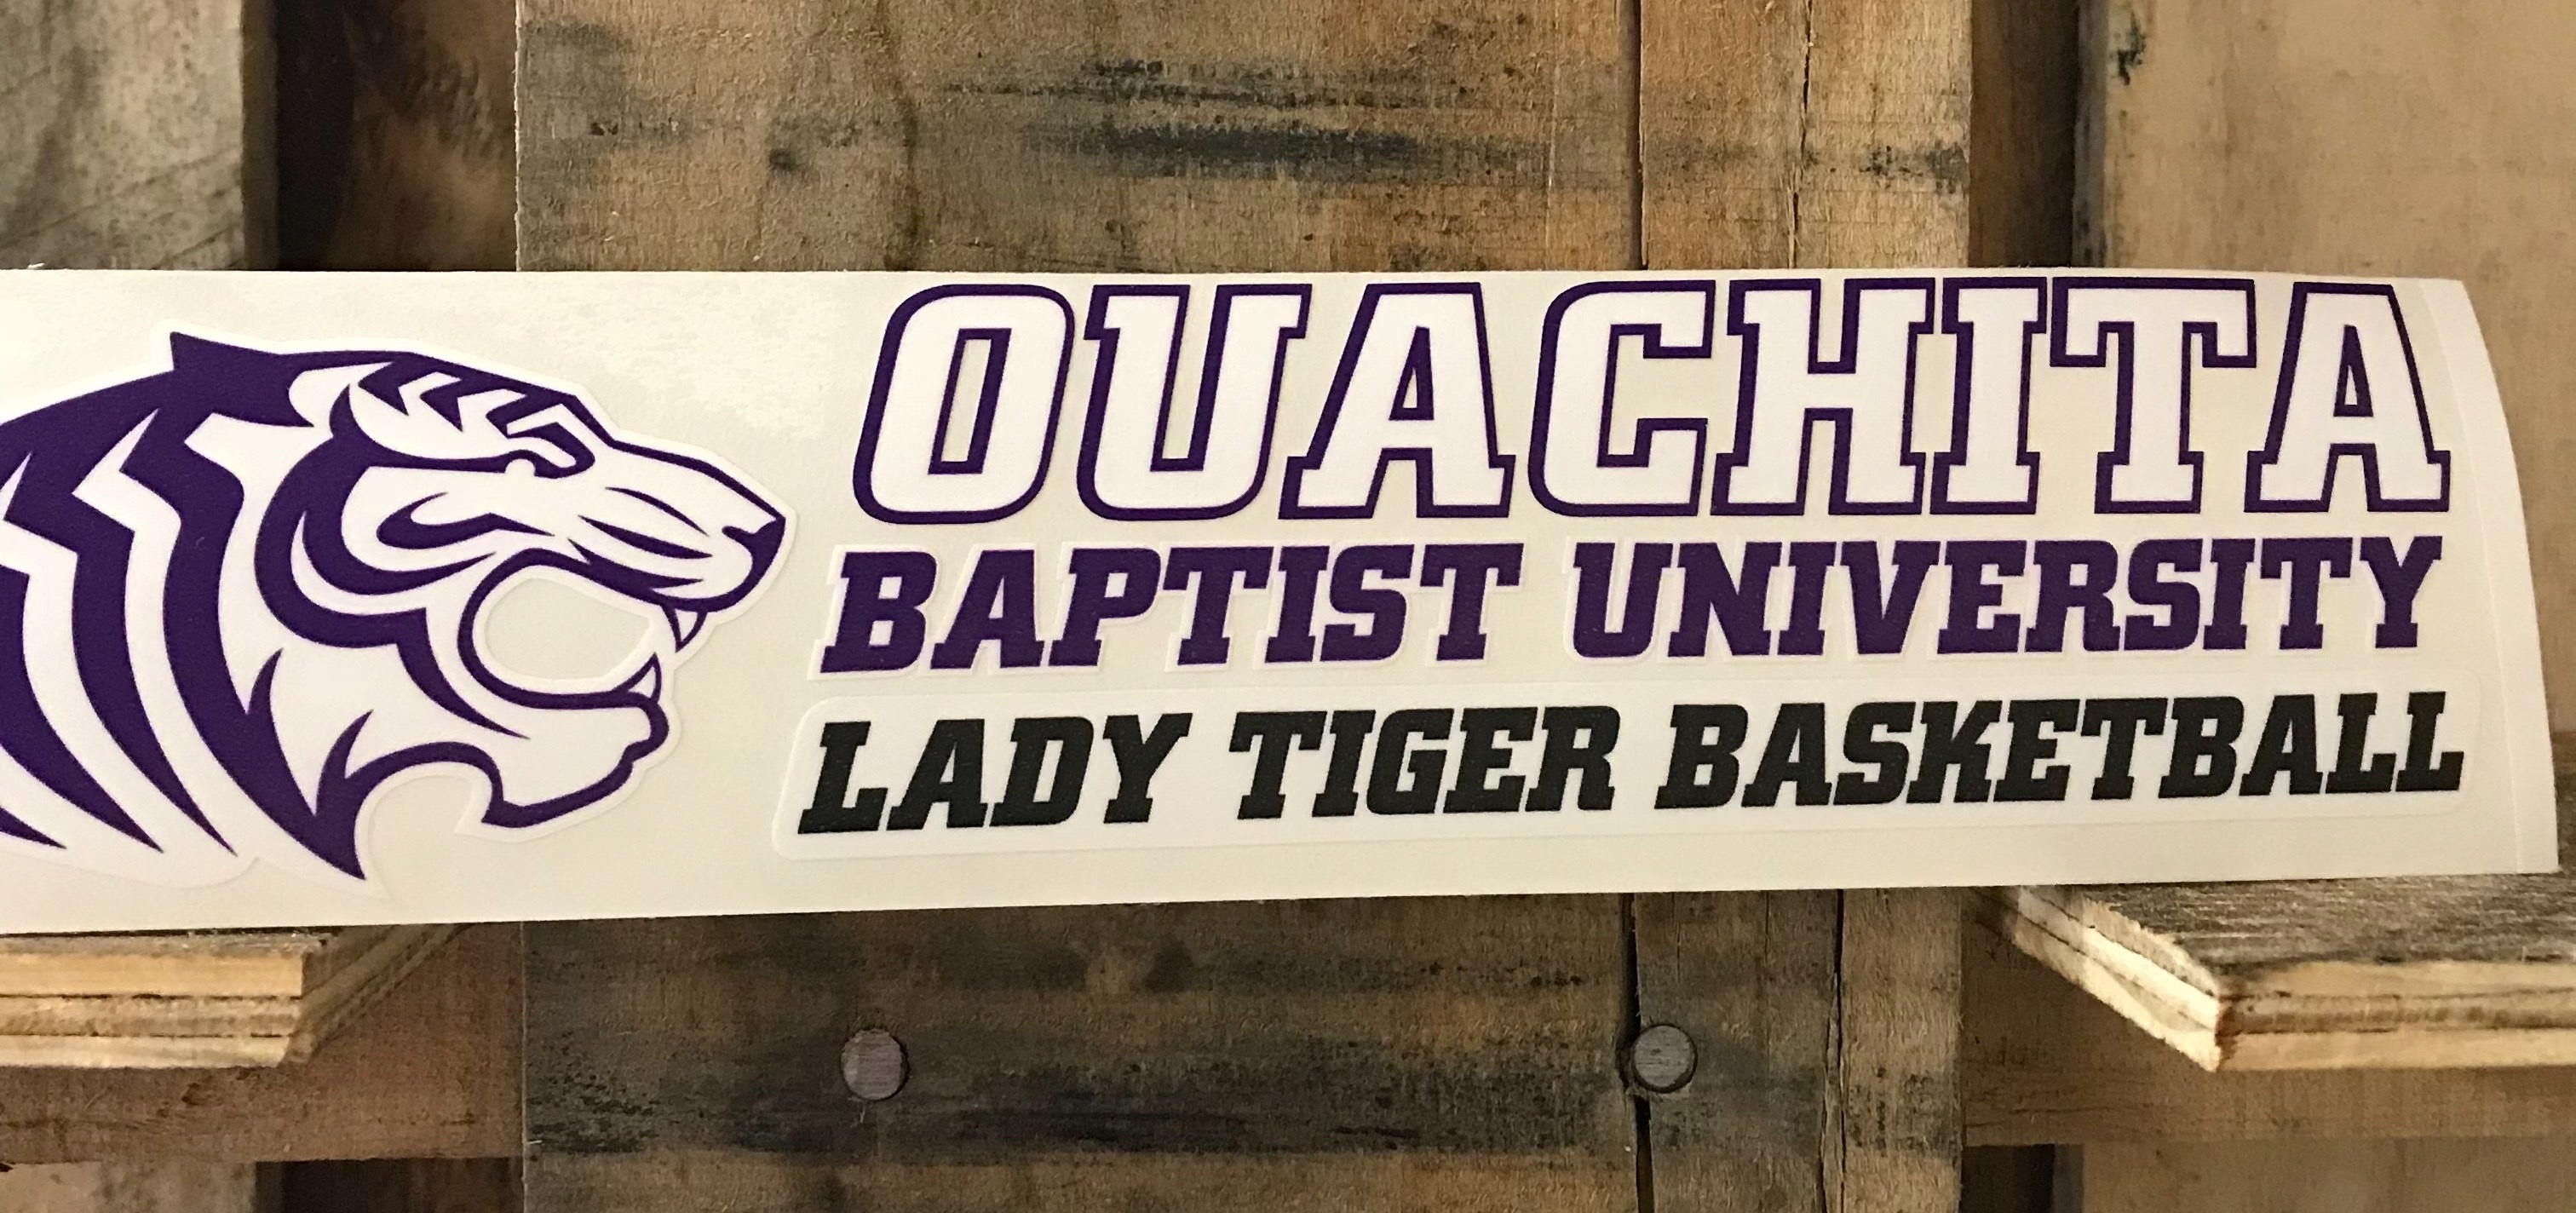 OBU LADY TIGER BASKETBALL CAR DECAL